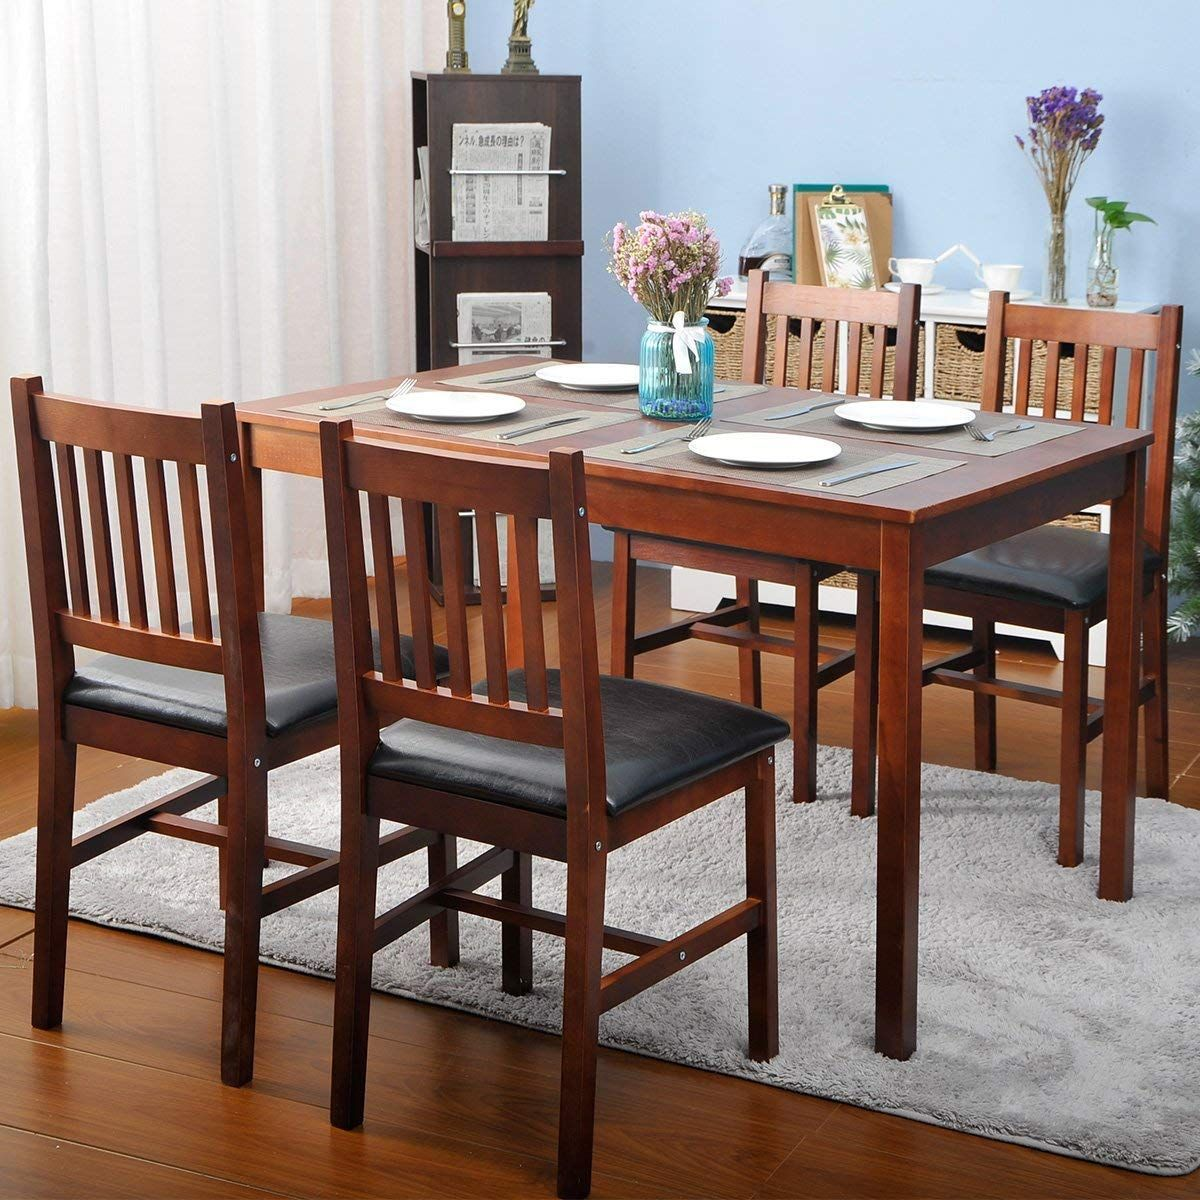 5 Piece Wood Dining Table Set 4 Person Home Kitchen Table And Chairs Walnut Nice Dining Dining Room Table Set Round Dining Table Sets Round Dining Room Sets